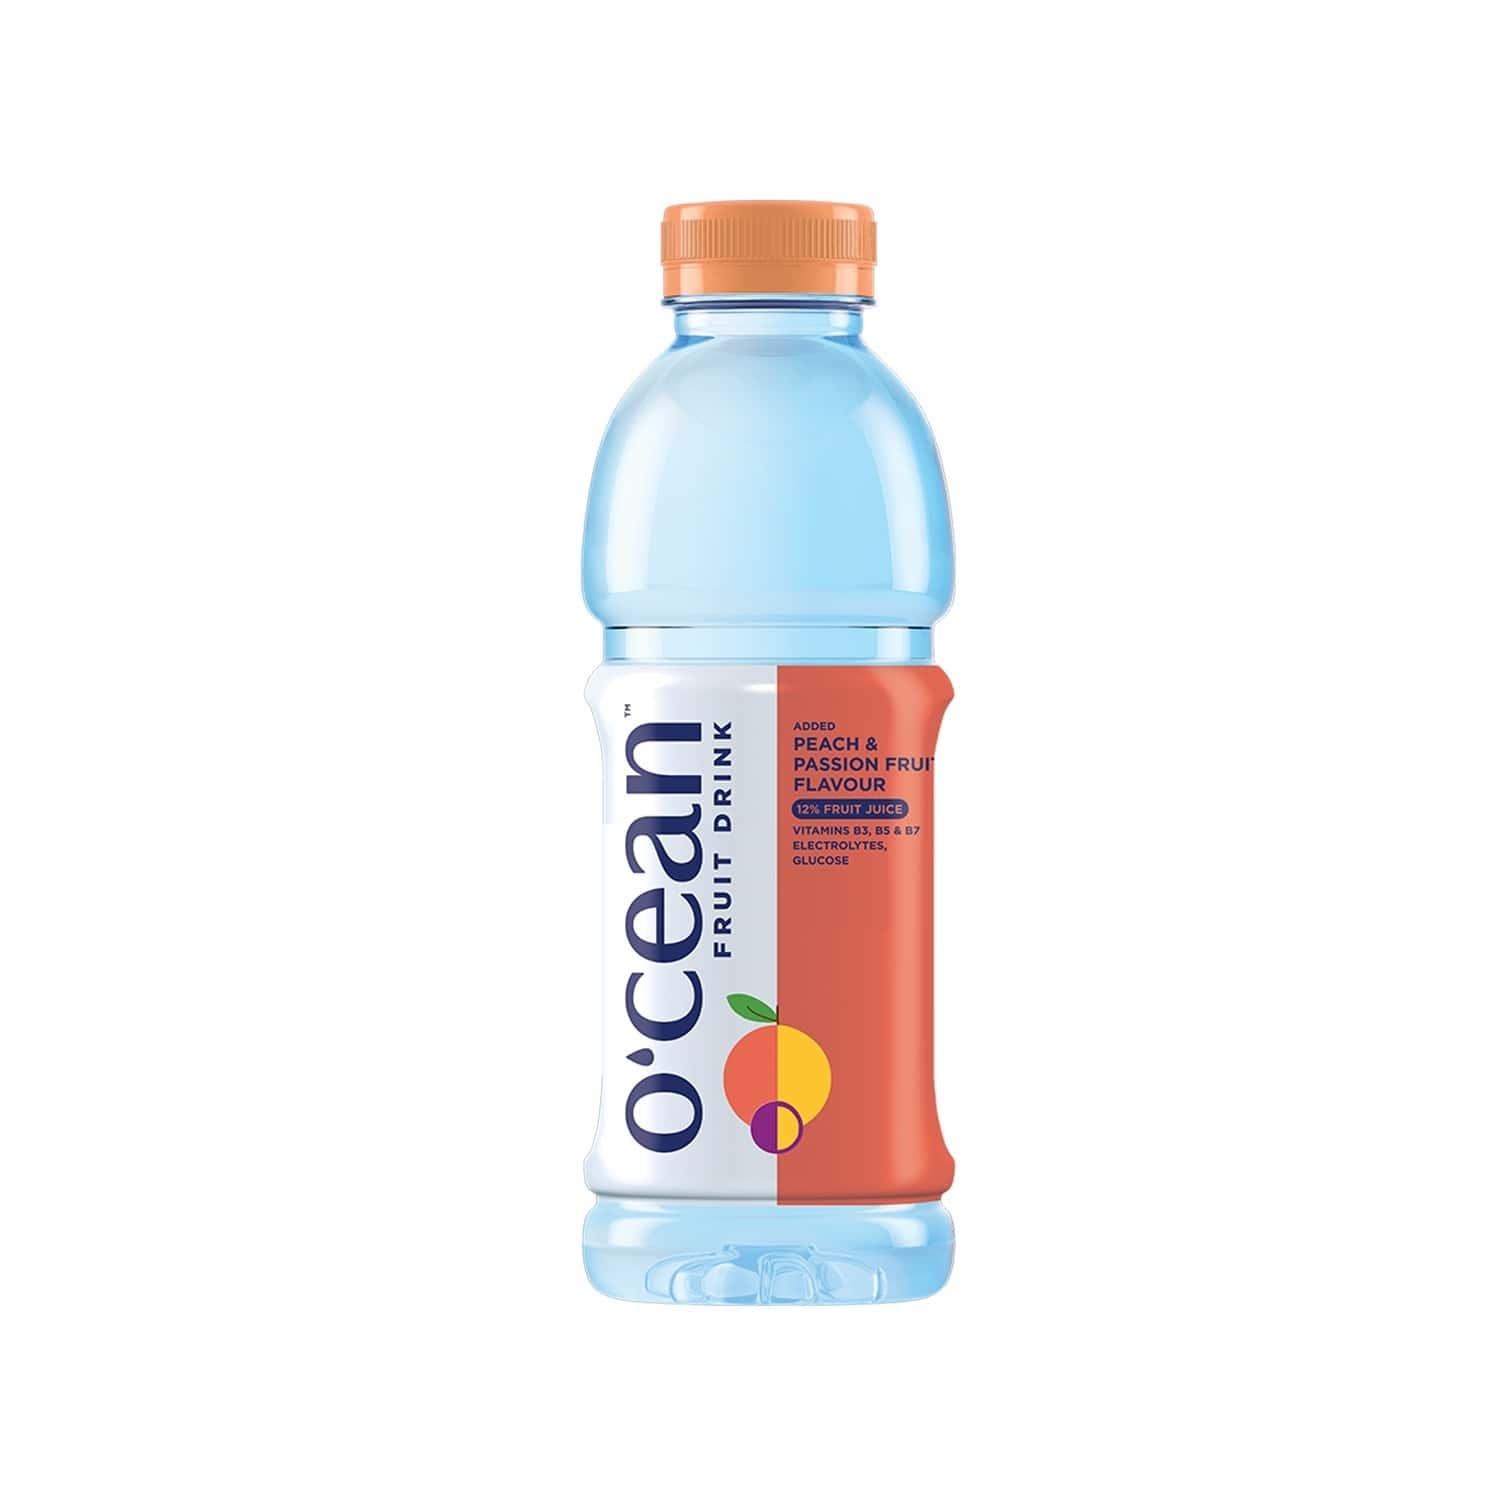 Ocean Peach Passion Fruit Drink  Bottle Of 500 Ml